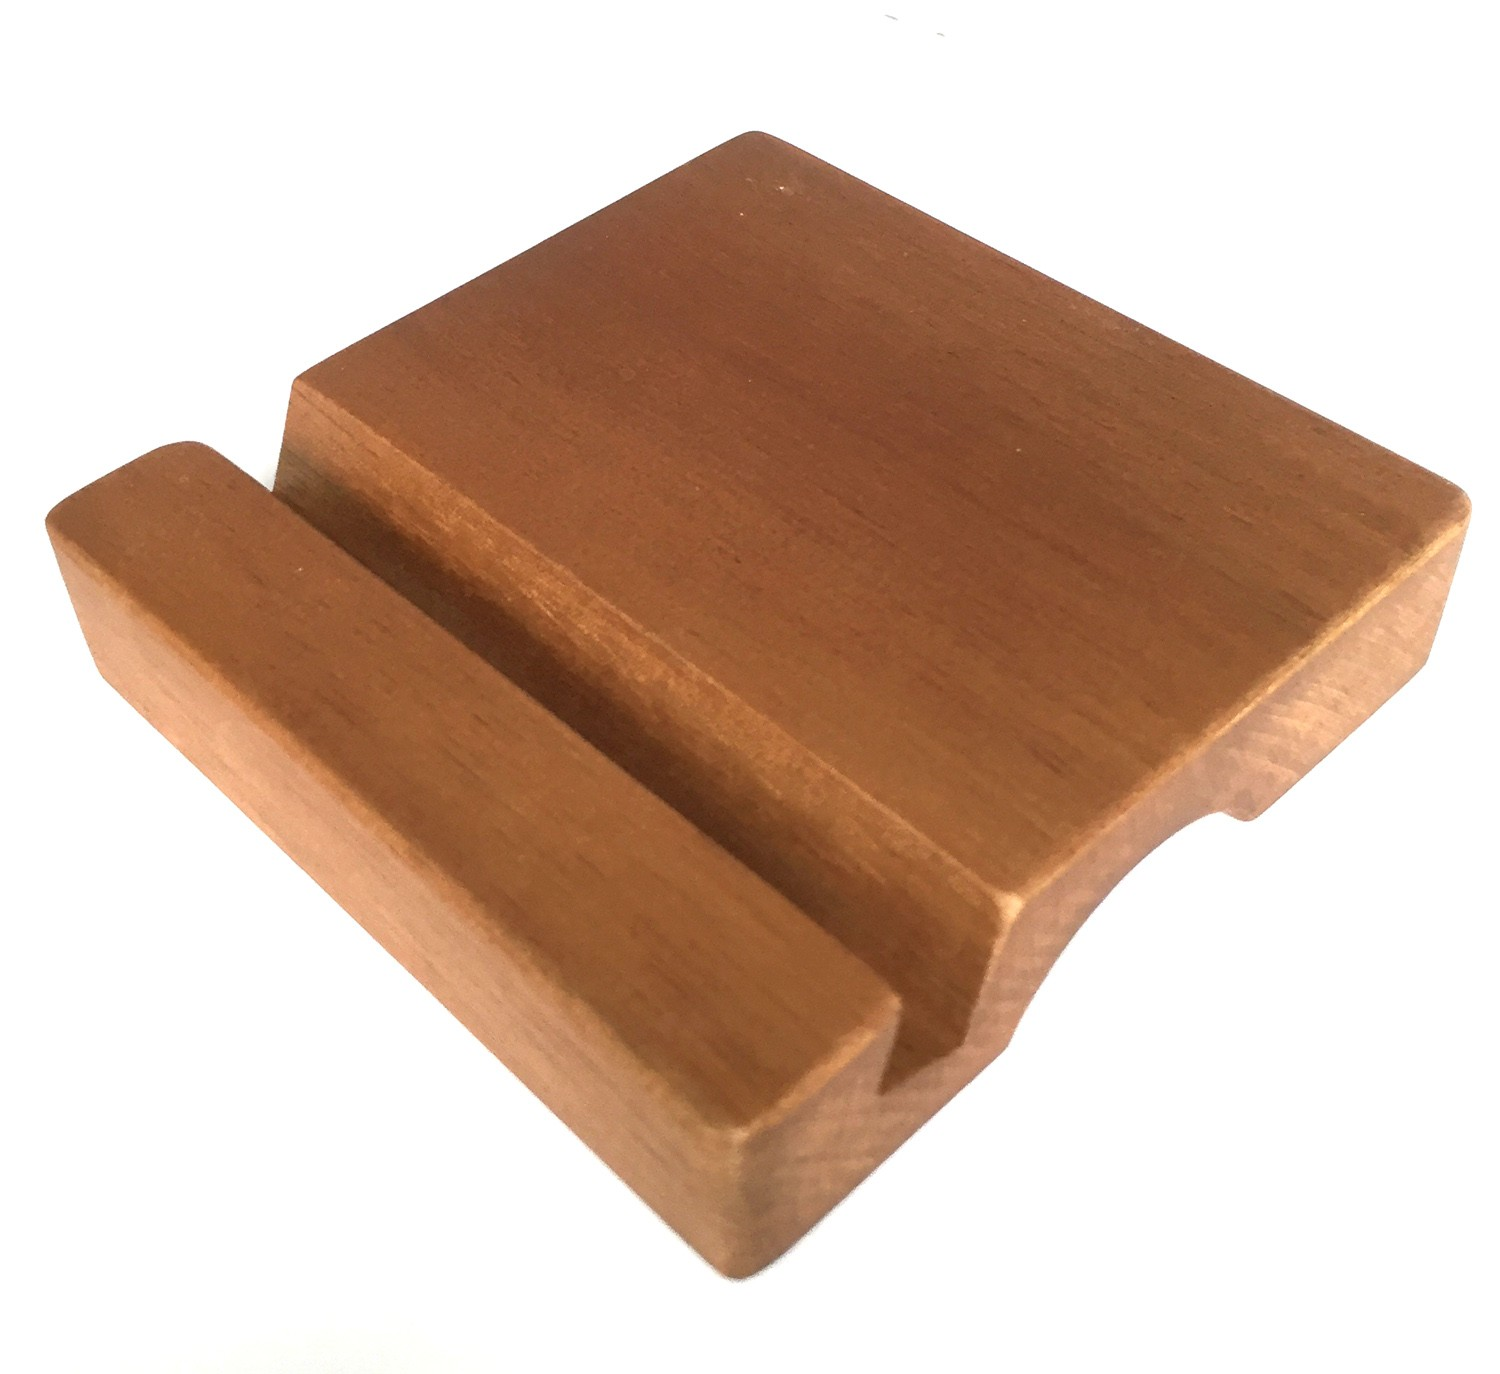 Buy Wood Base Rolling Pin, Supply marble tool rolling pin, noodles rolling pin Brands